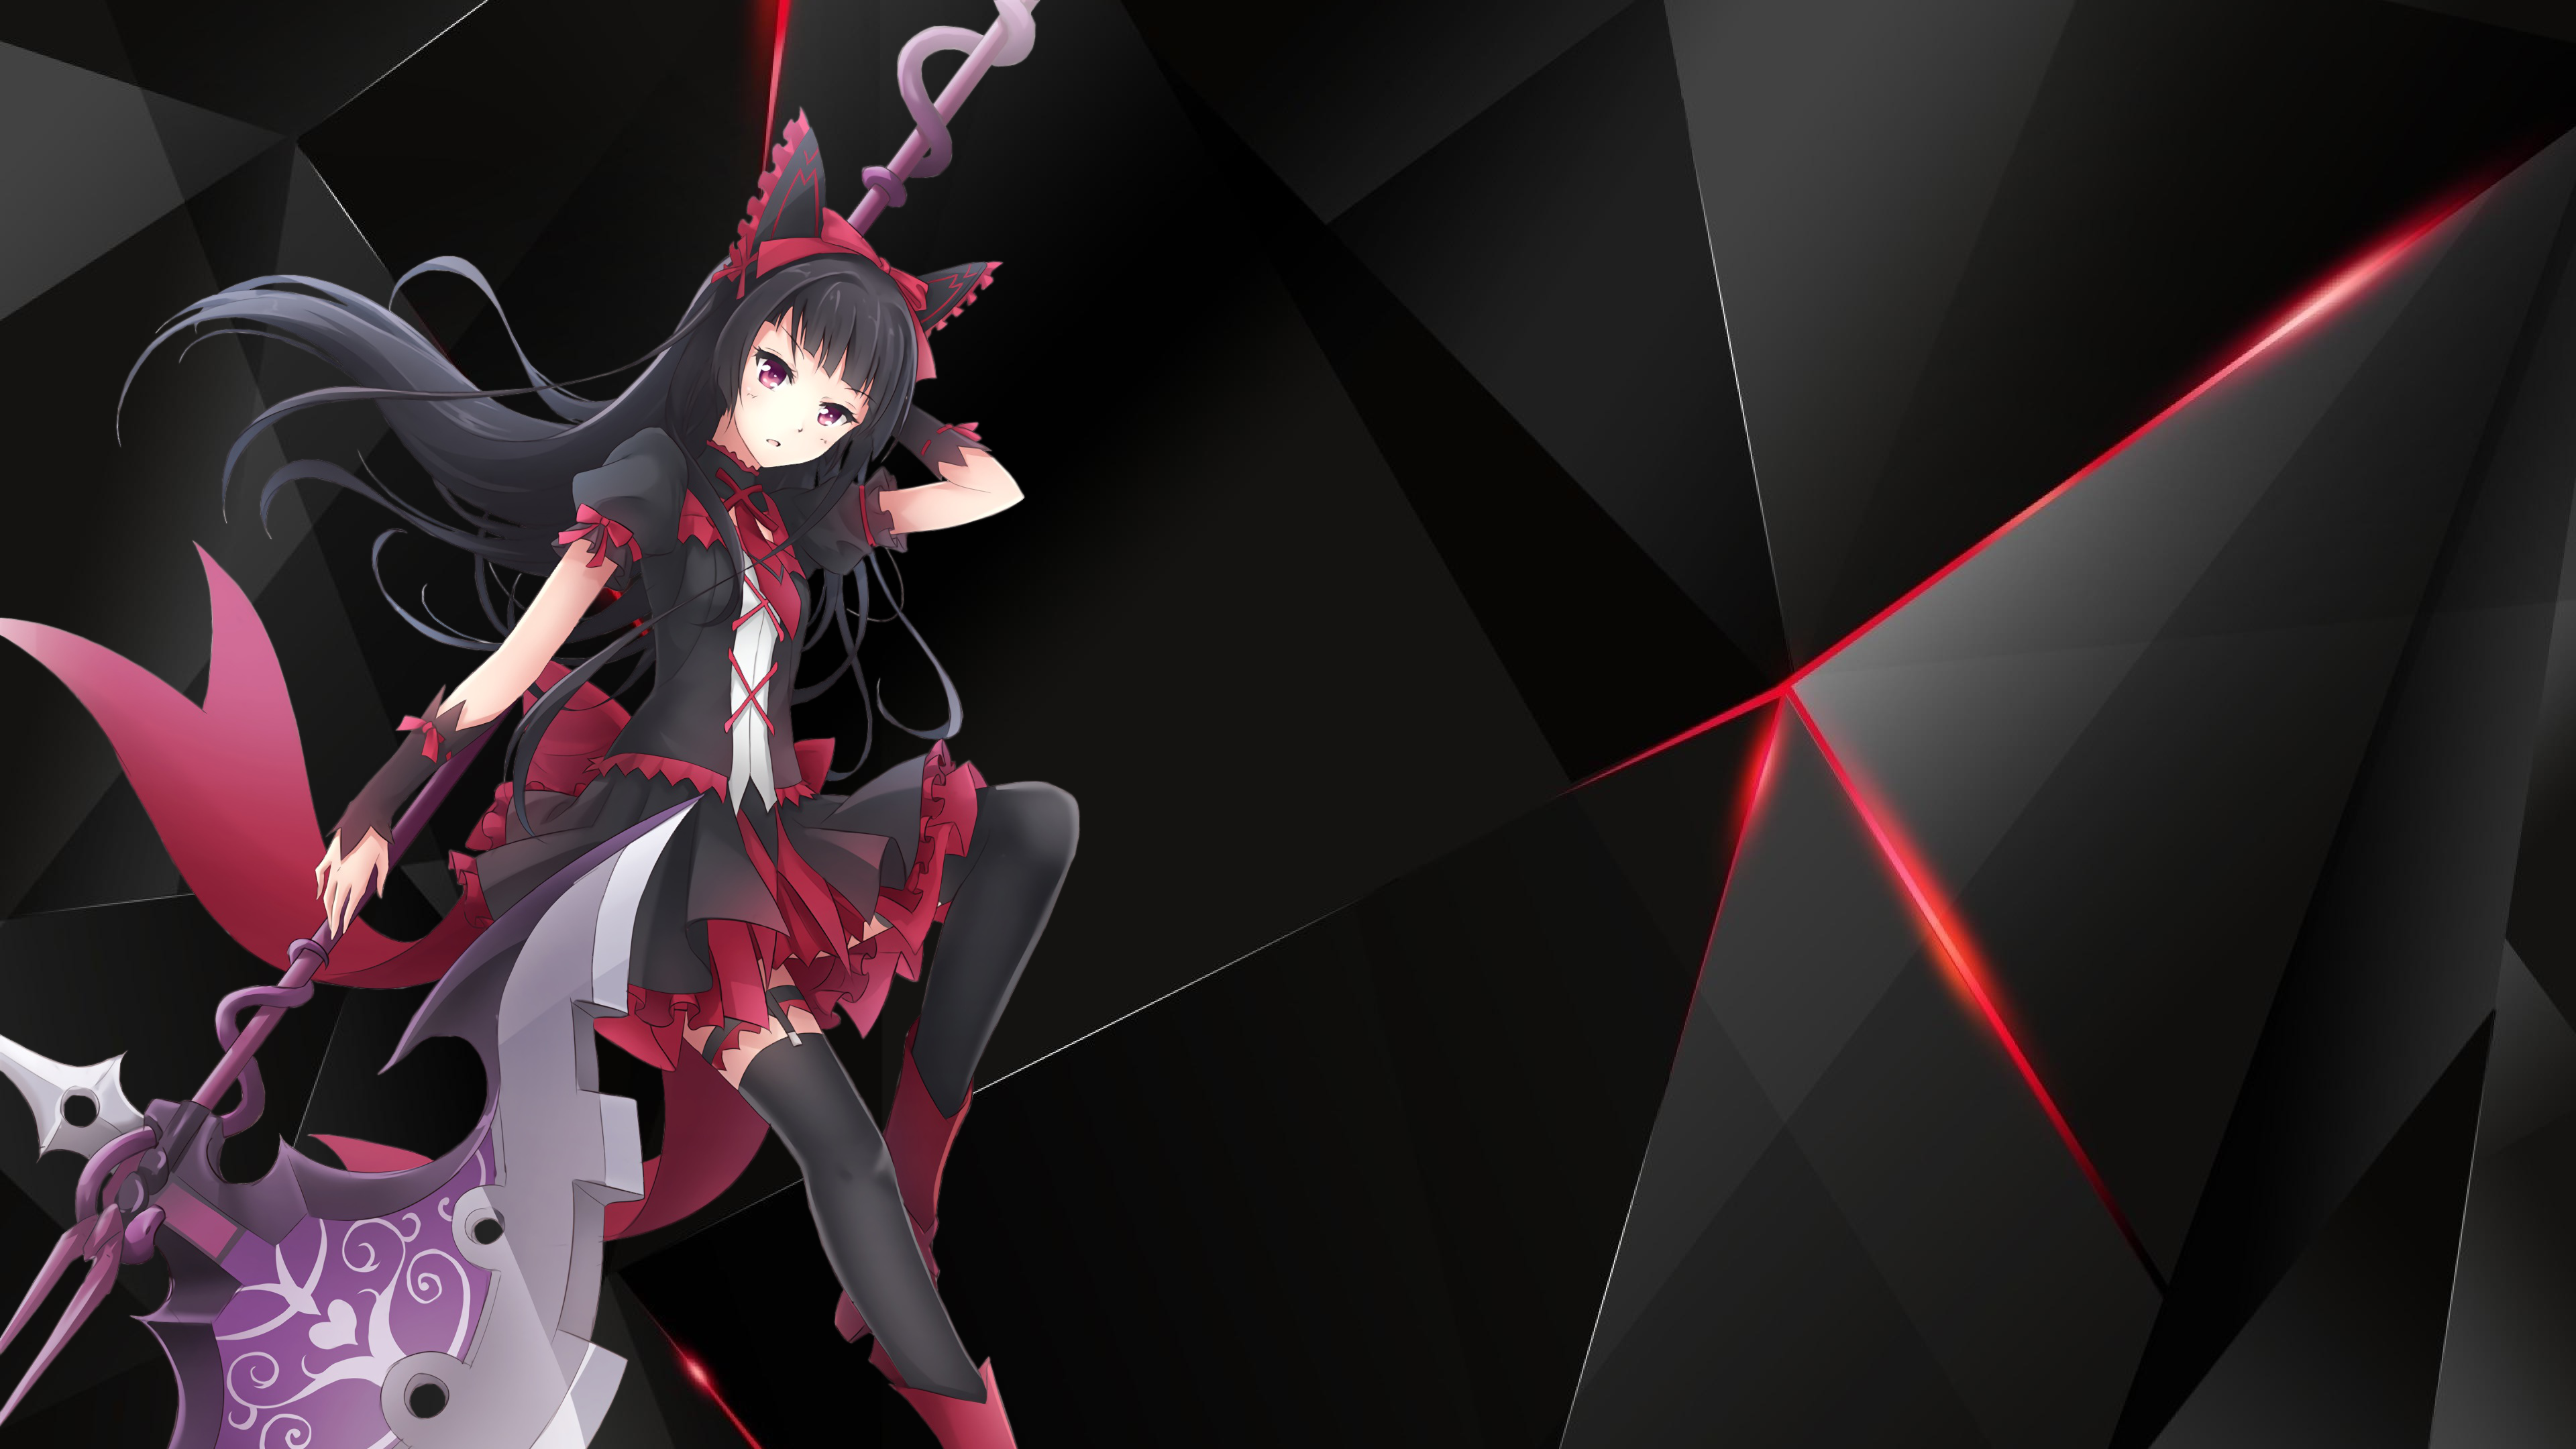 27 rory mercury hd wallpapers | background images - wallpaper abyss